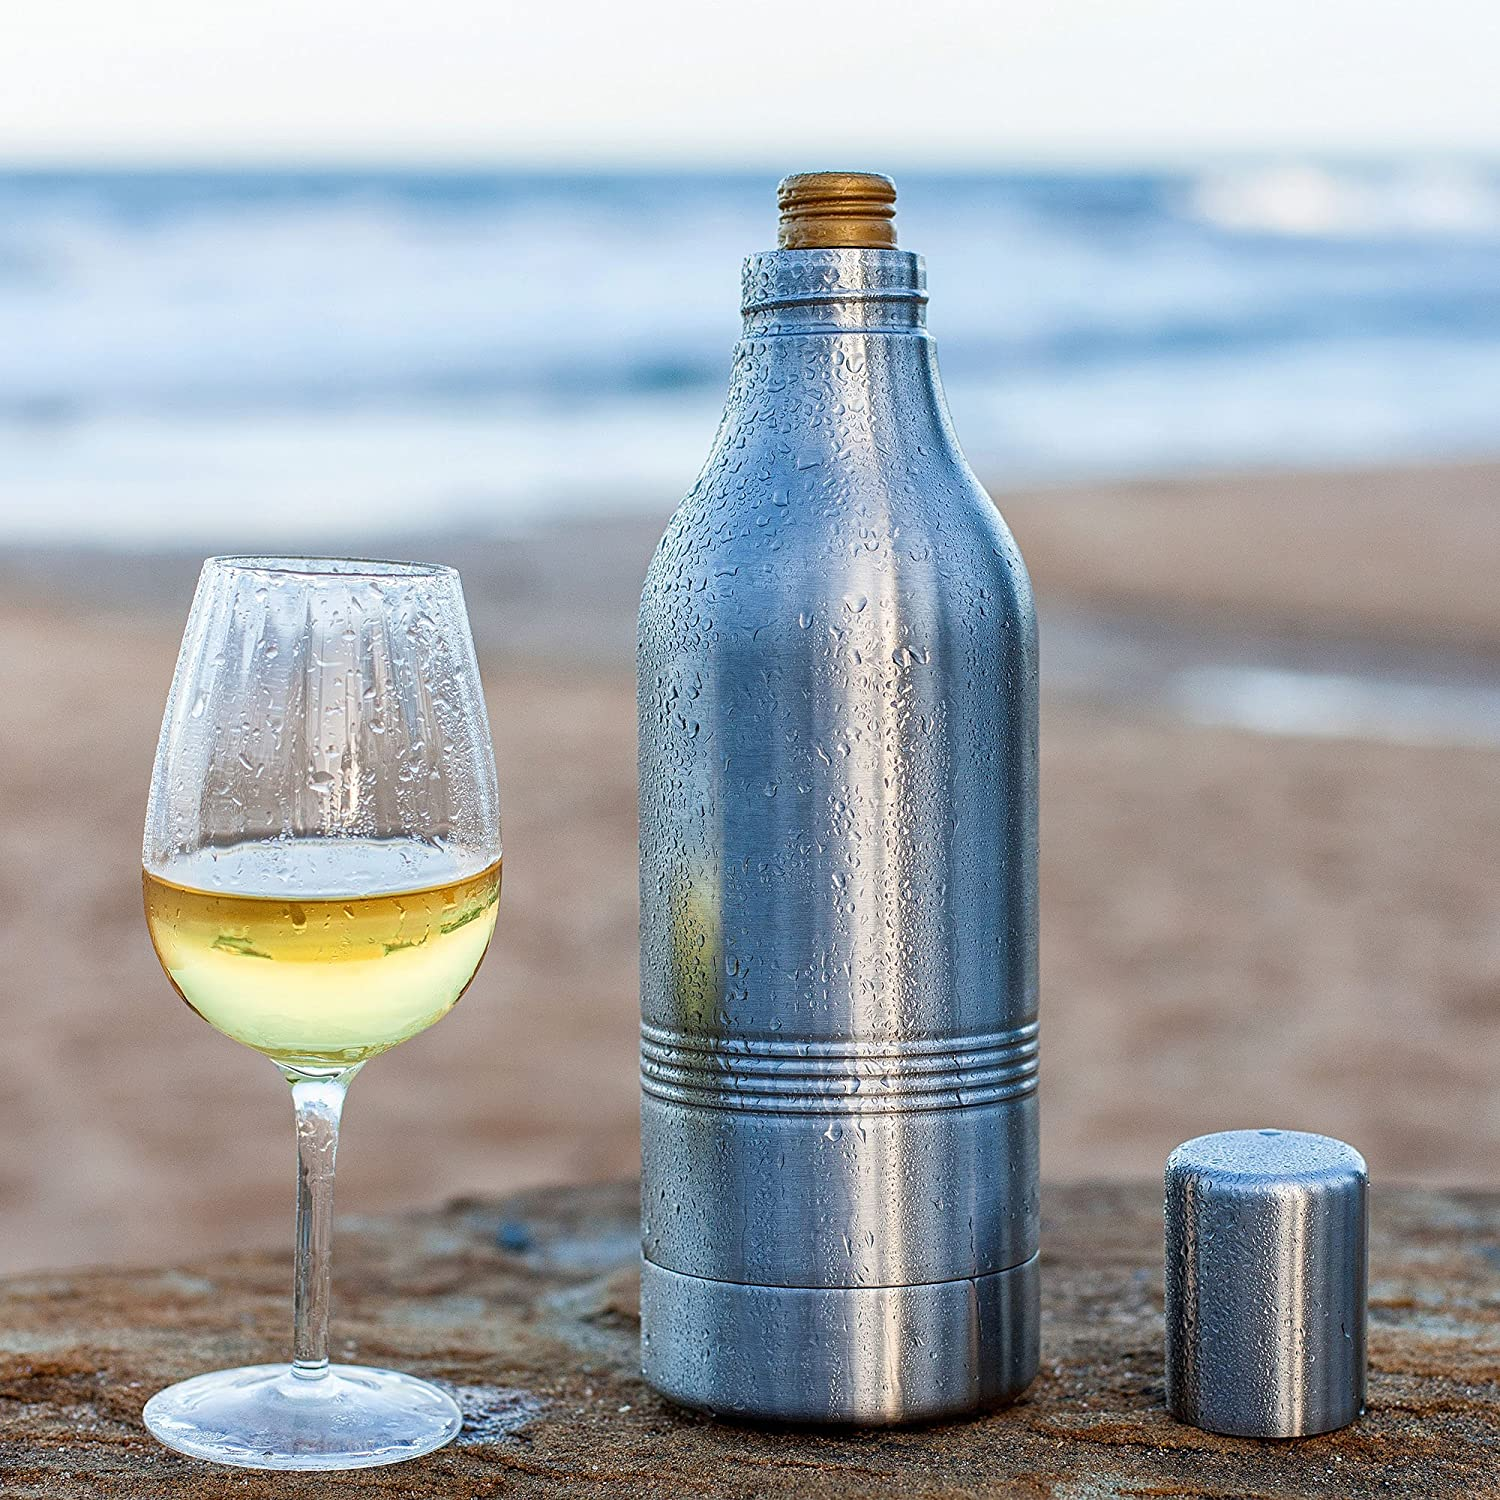 Amazon.com: BarCooler Stainless Steel Wine Bottle Holder Double Wall ...